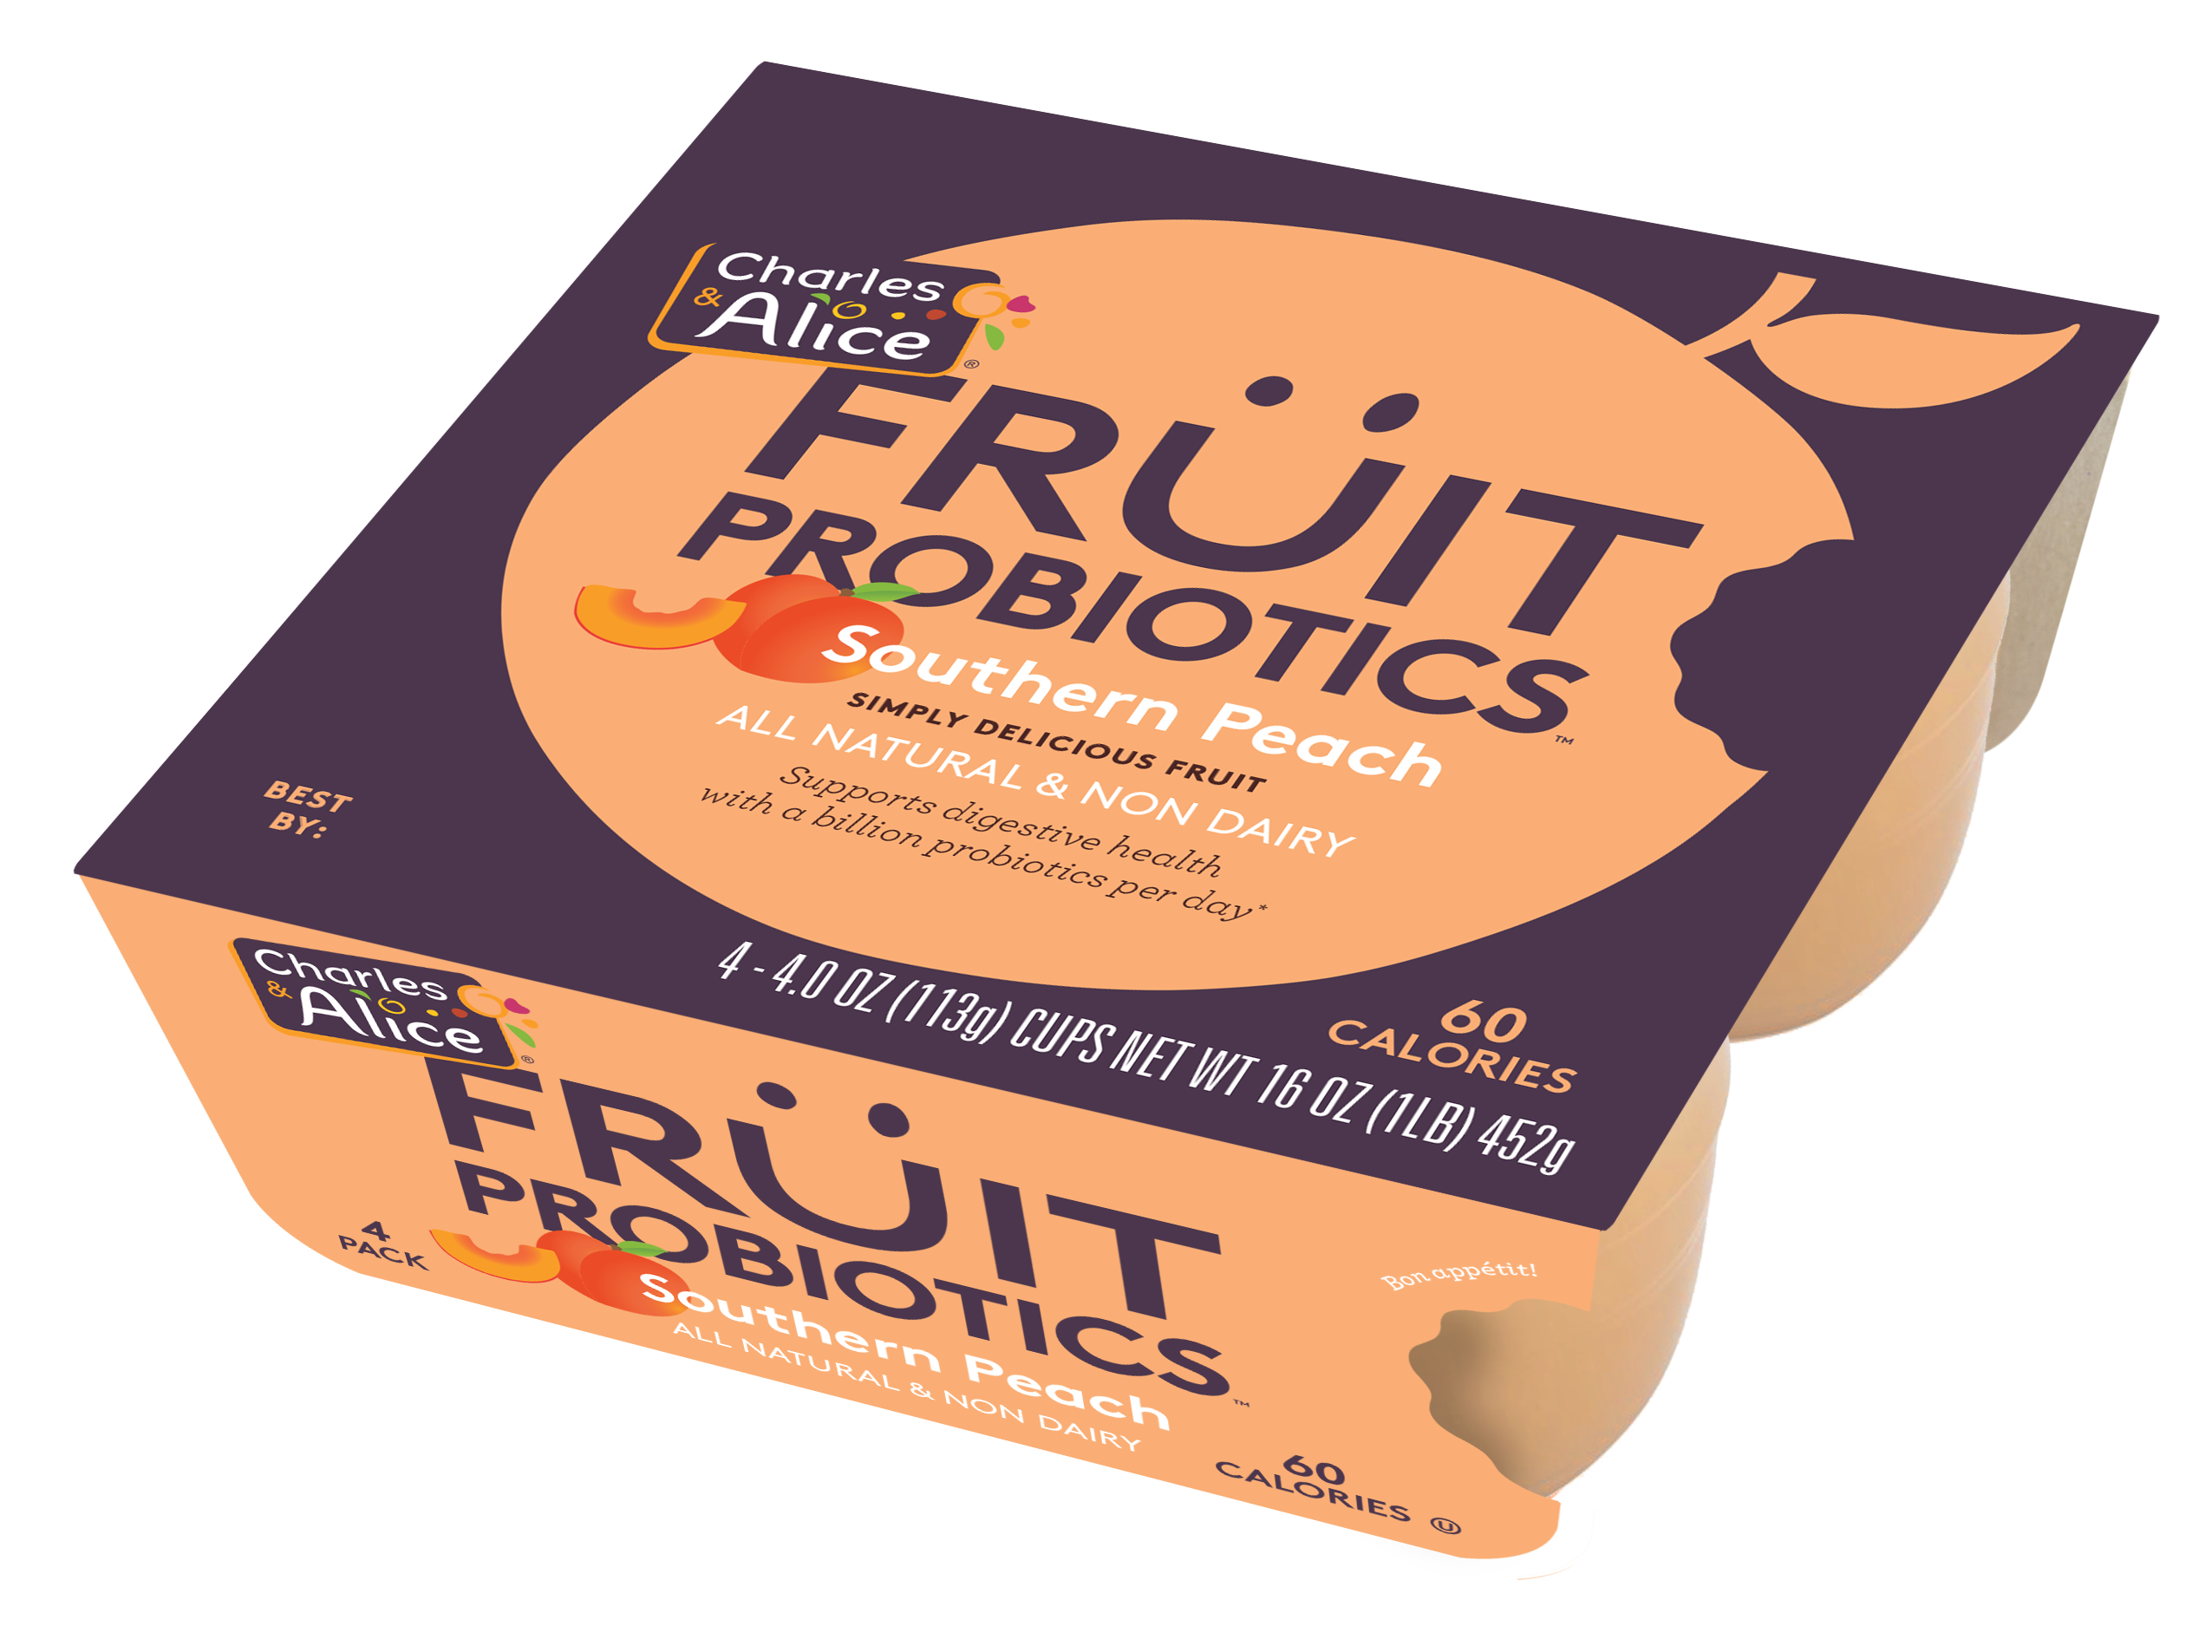 Dairy clipart probiotic. Charles alice s fruit